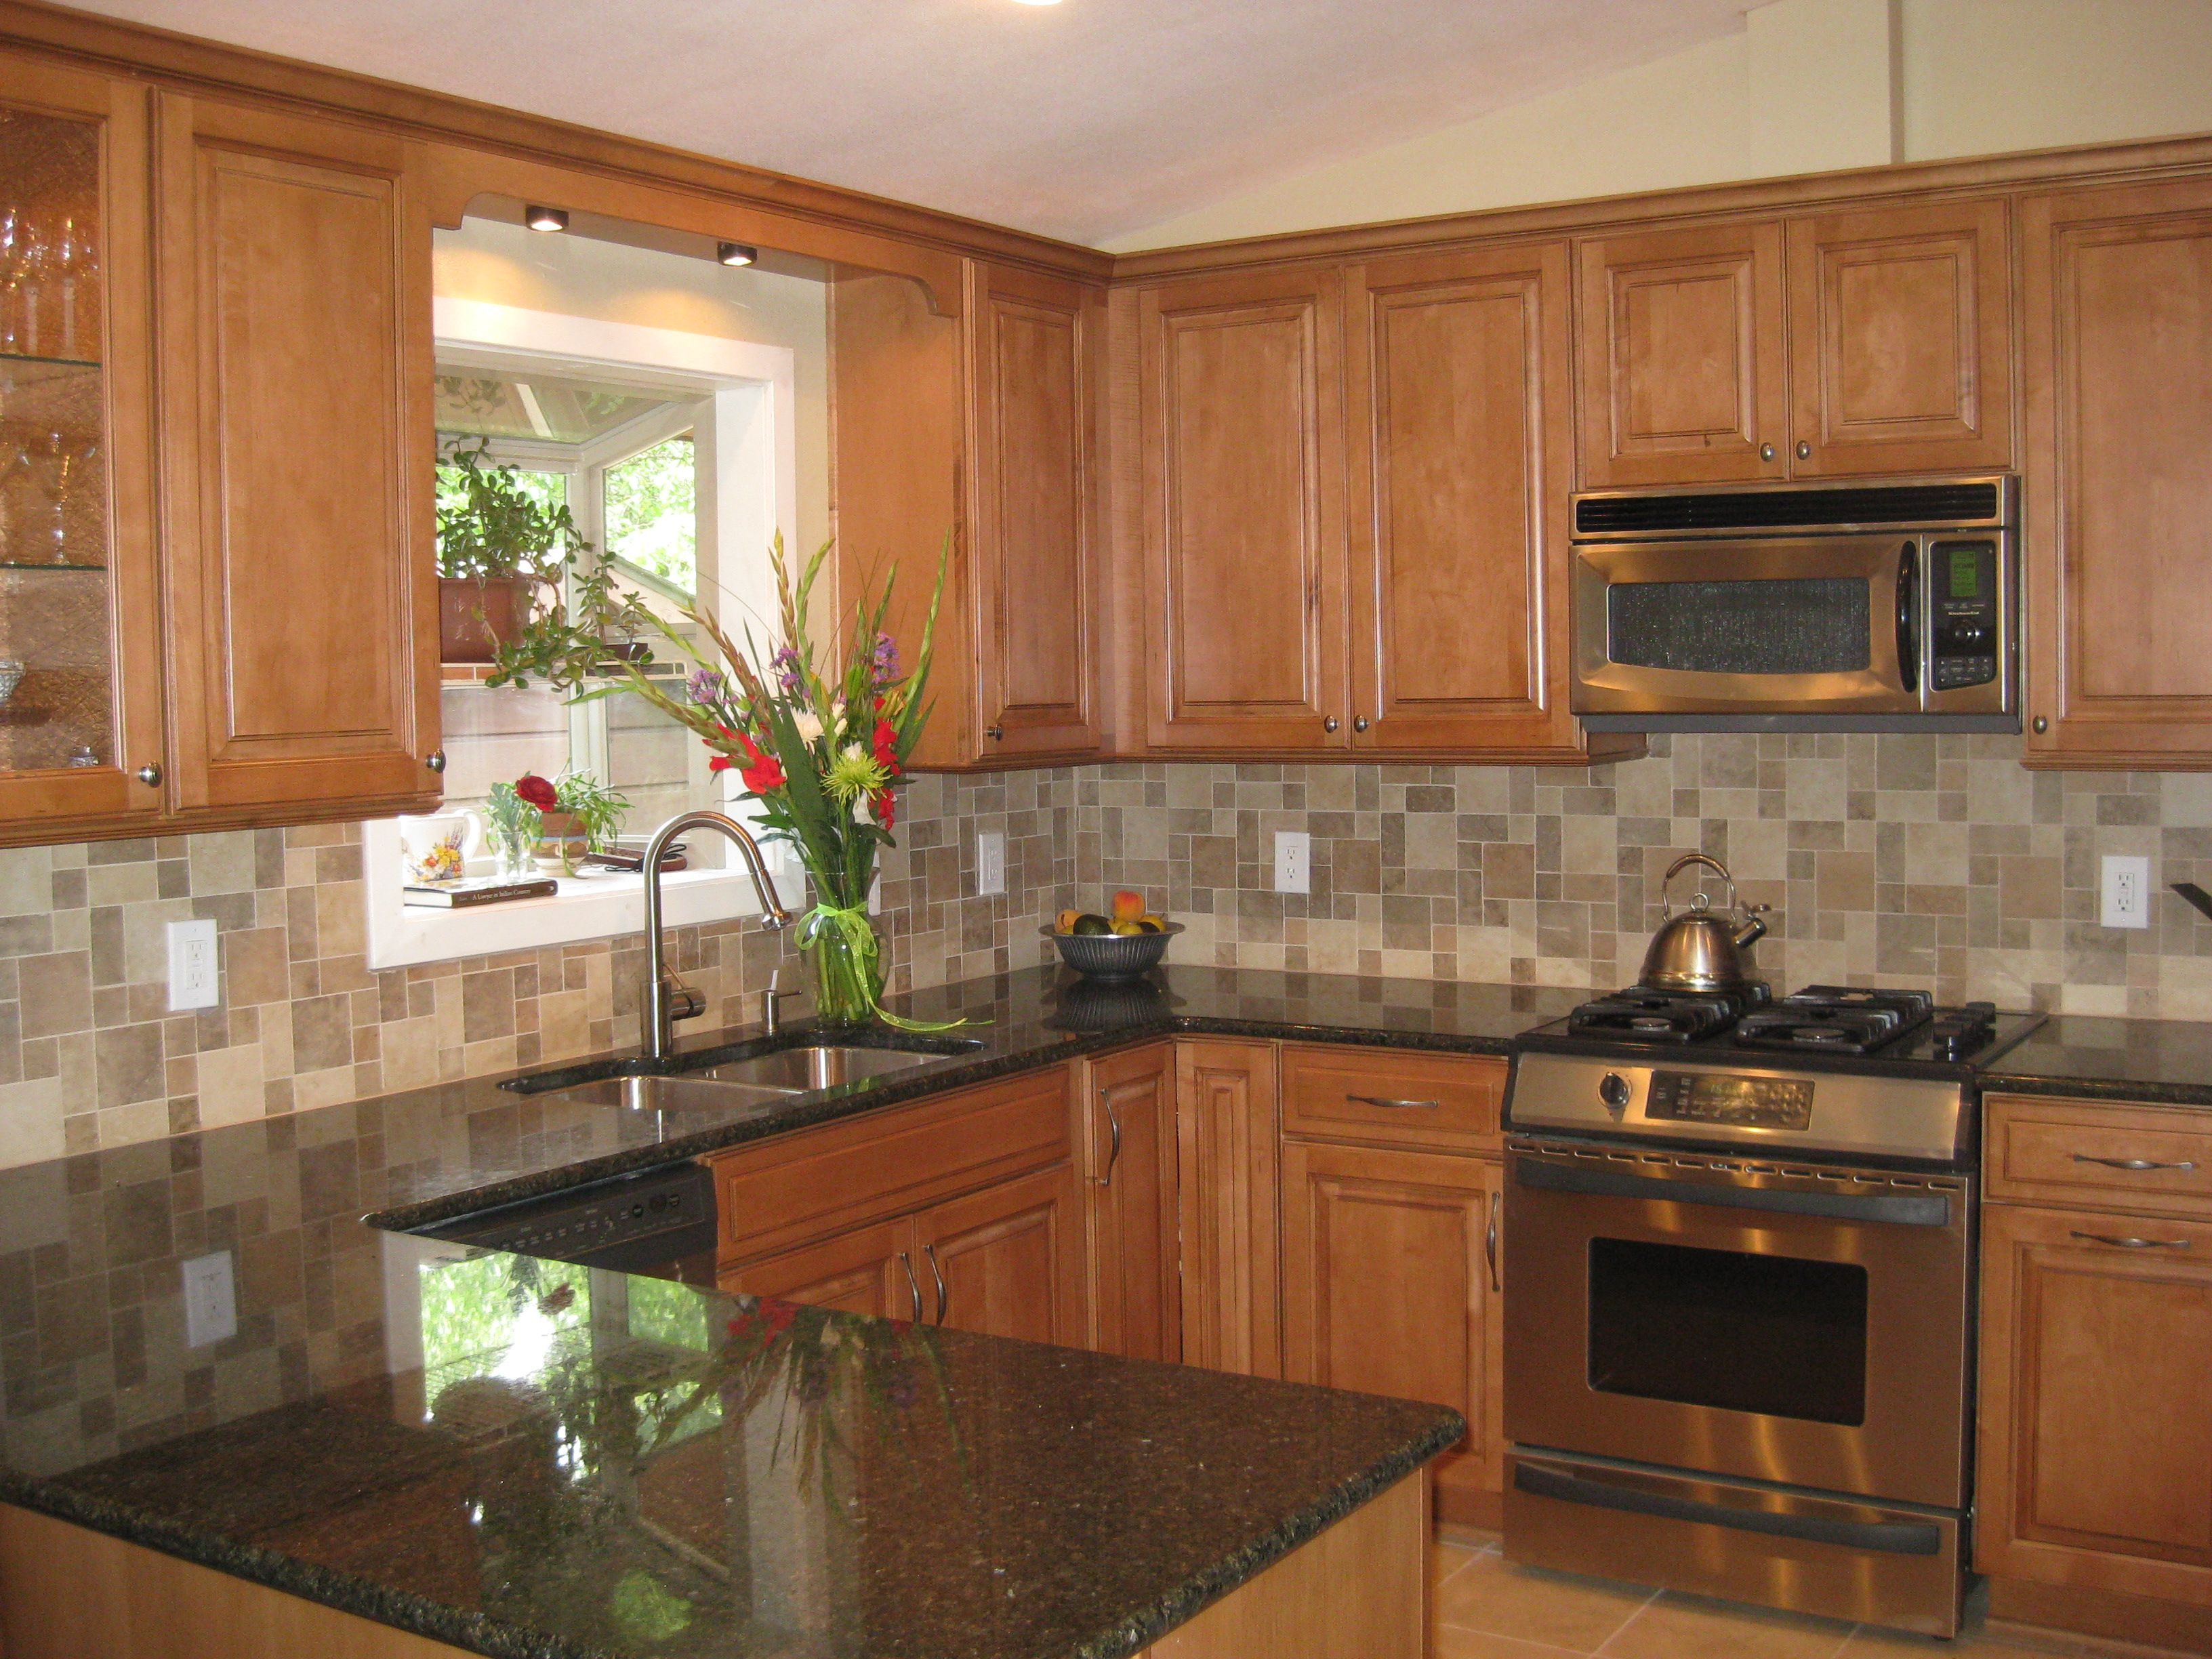 Light Maple Kitchen Cabinets with Granite Countertops | kitchen ...